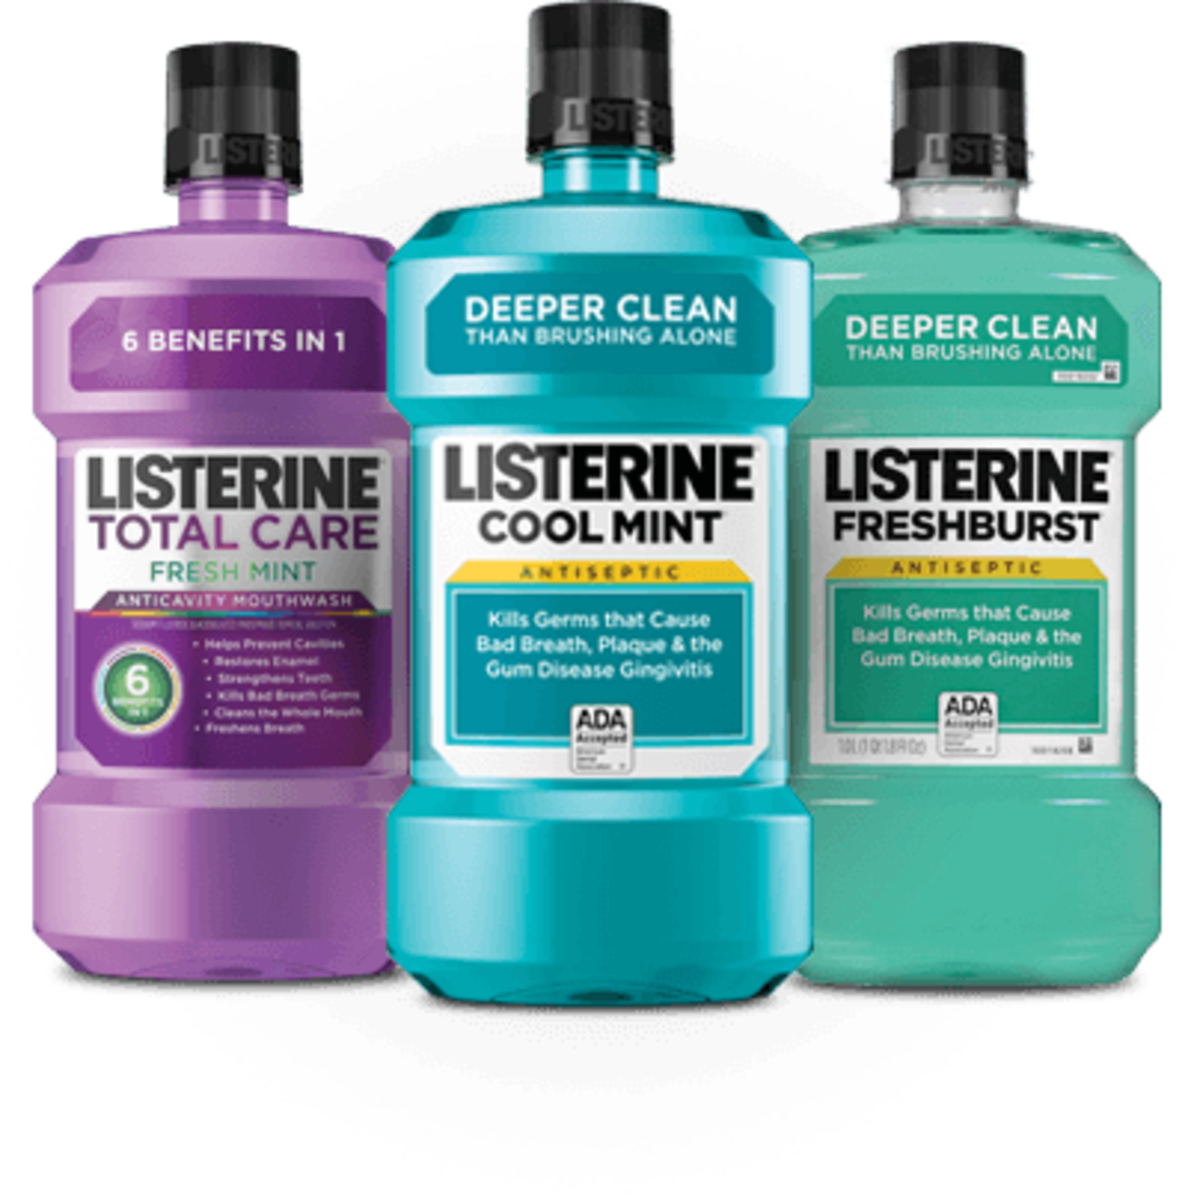 Listerine is used for more than freshening breath.